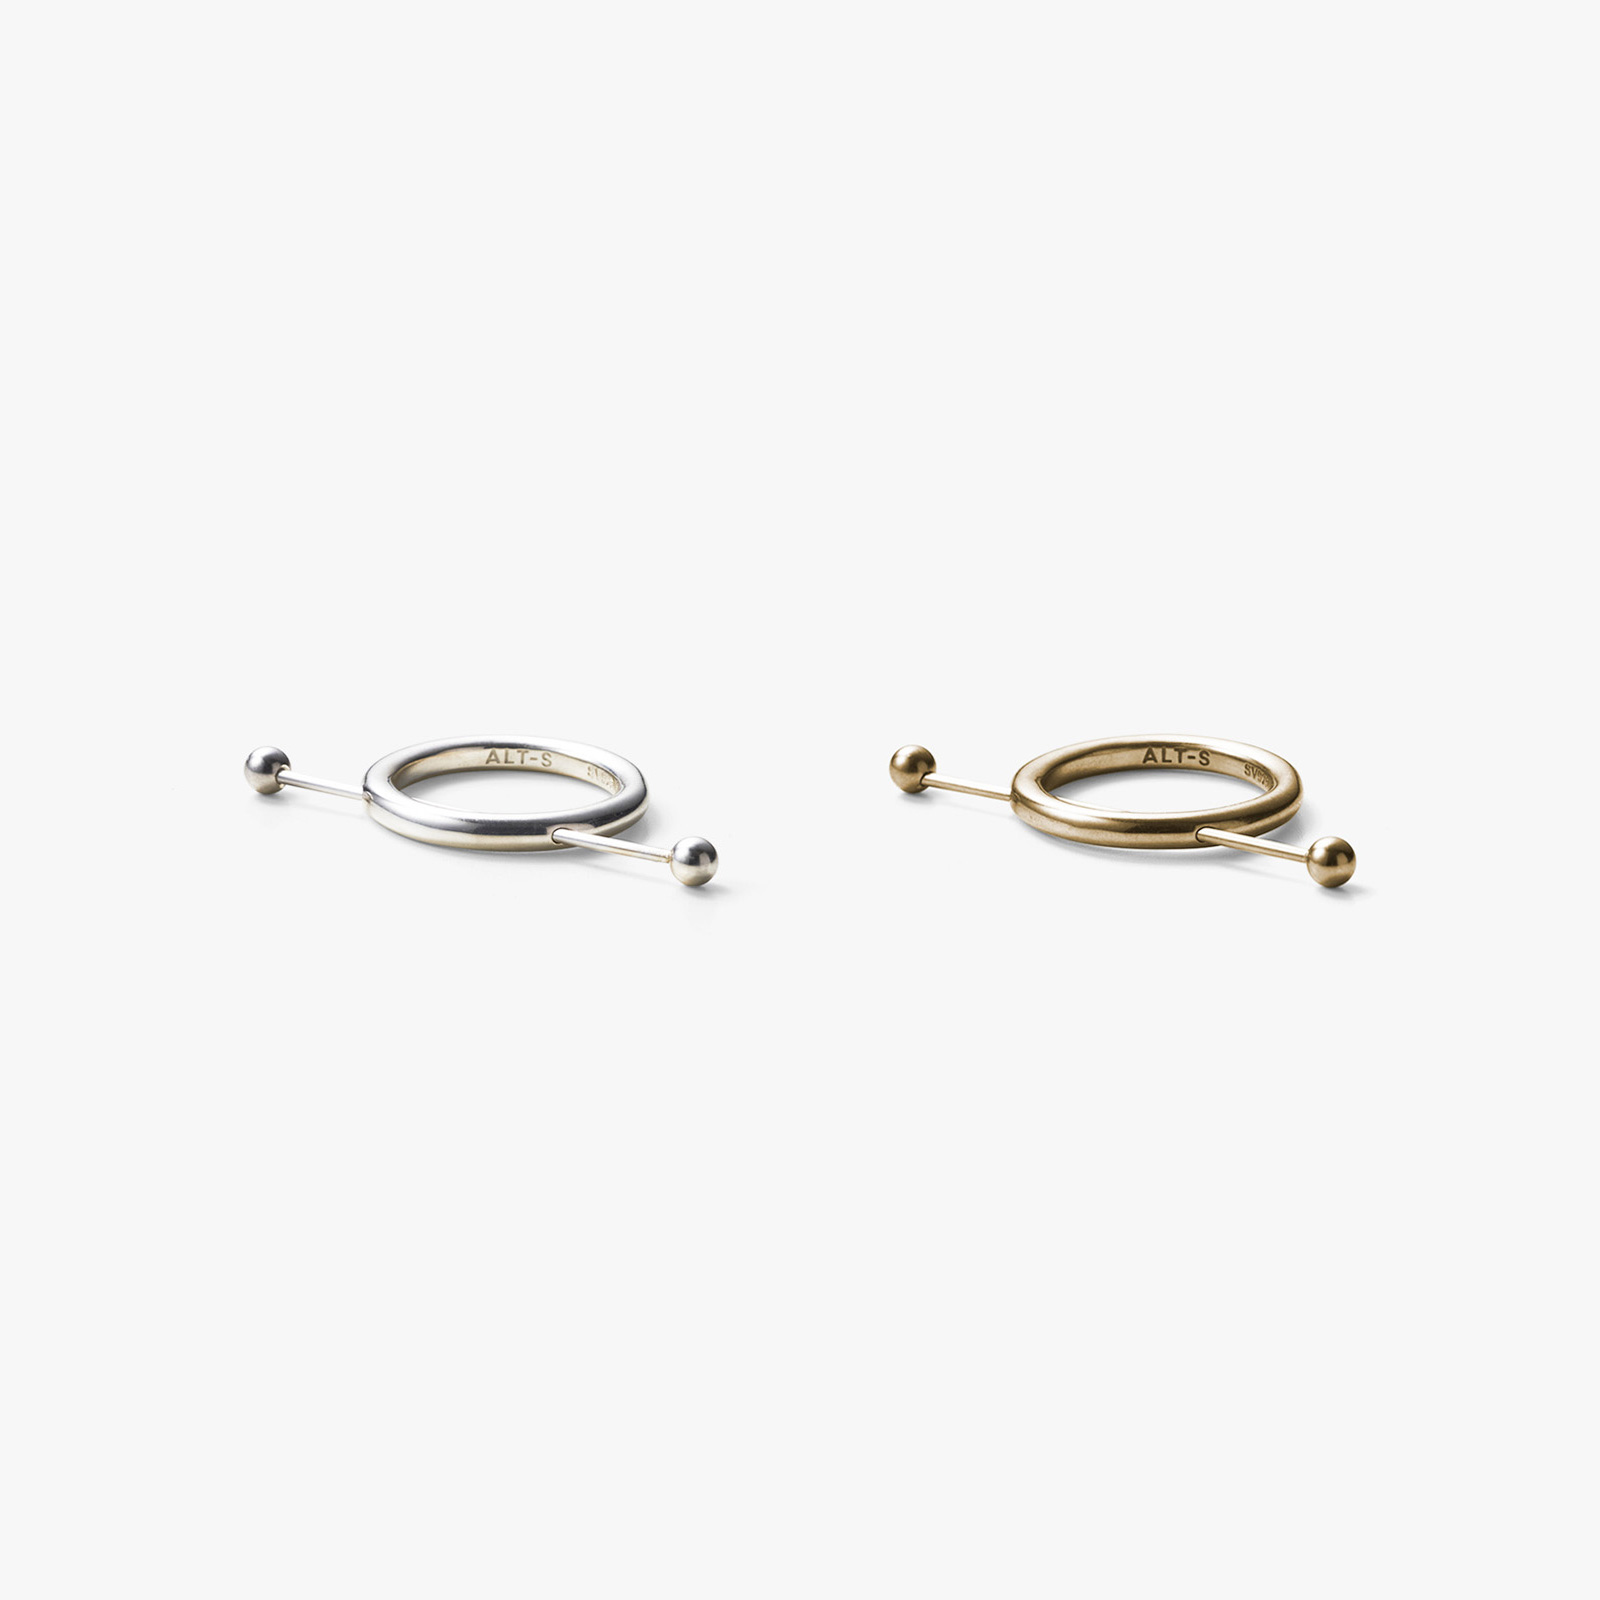 Long Stick Ring in Silver or Gold by ALT-S